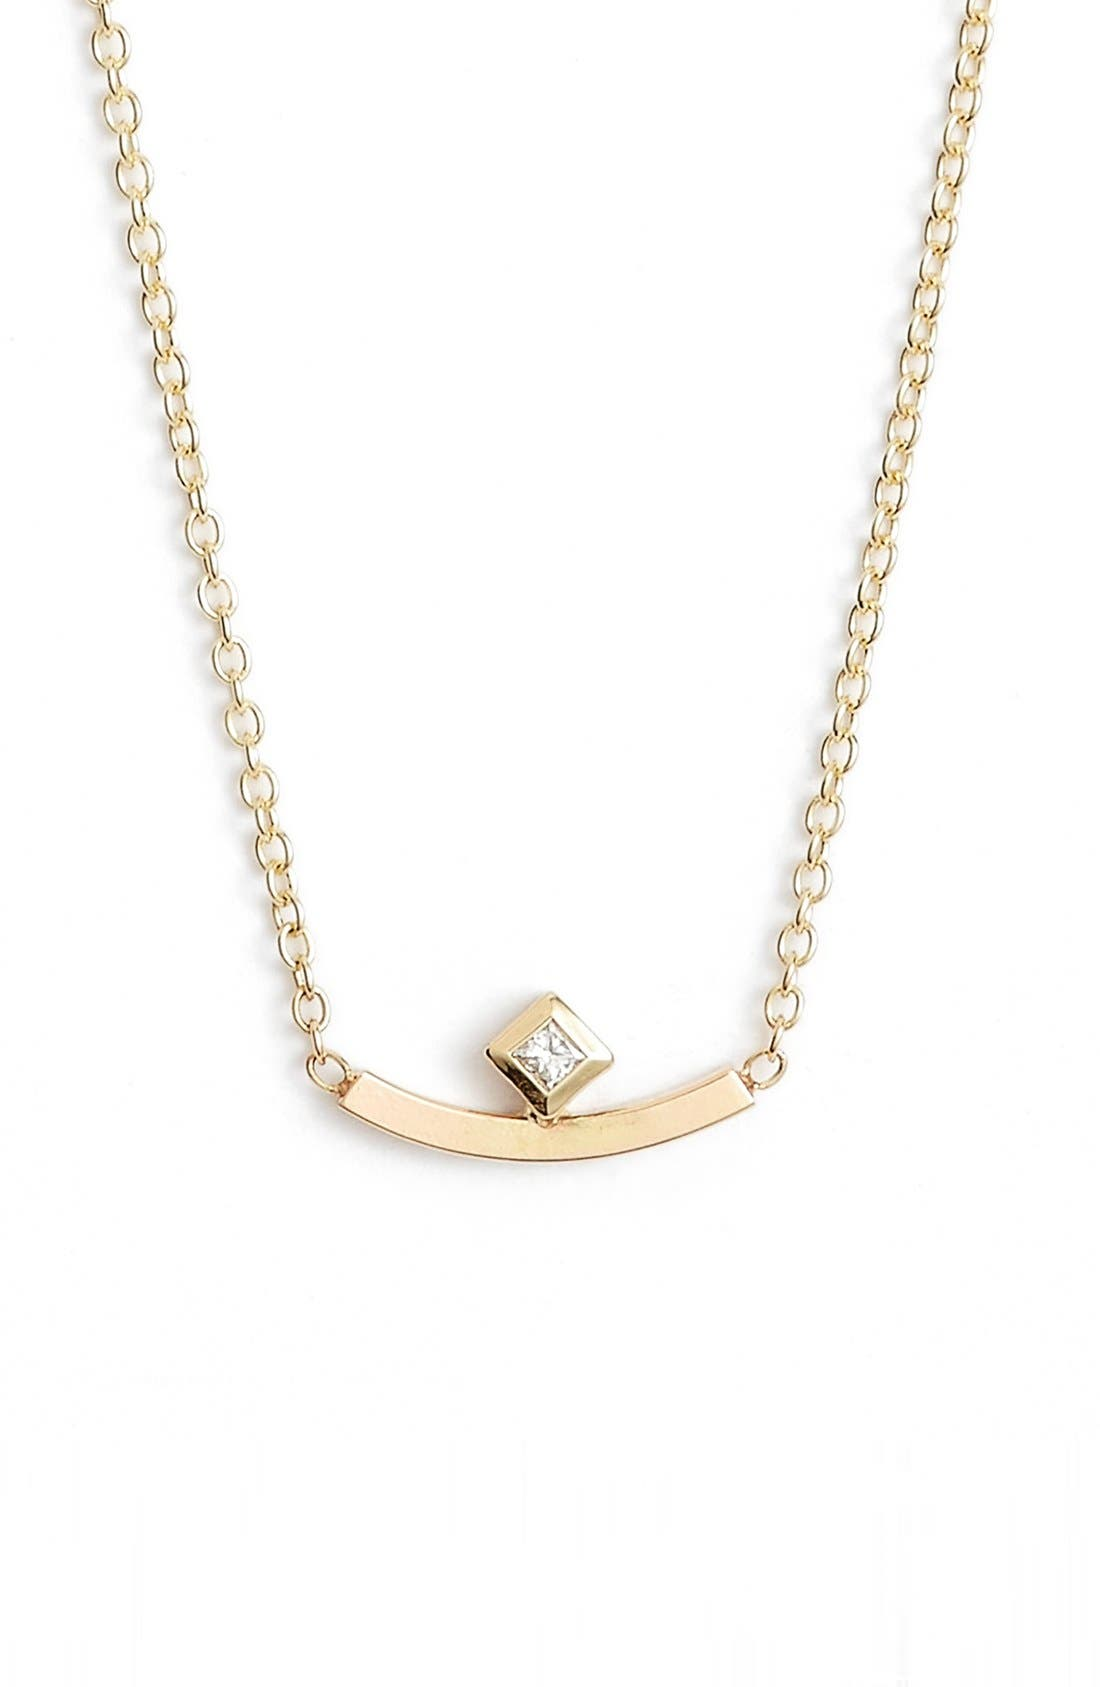 Main Image - Zoë Chicco Diamond Curved Bar Necklace